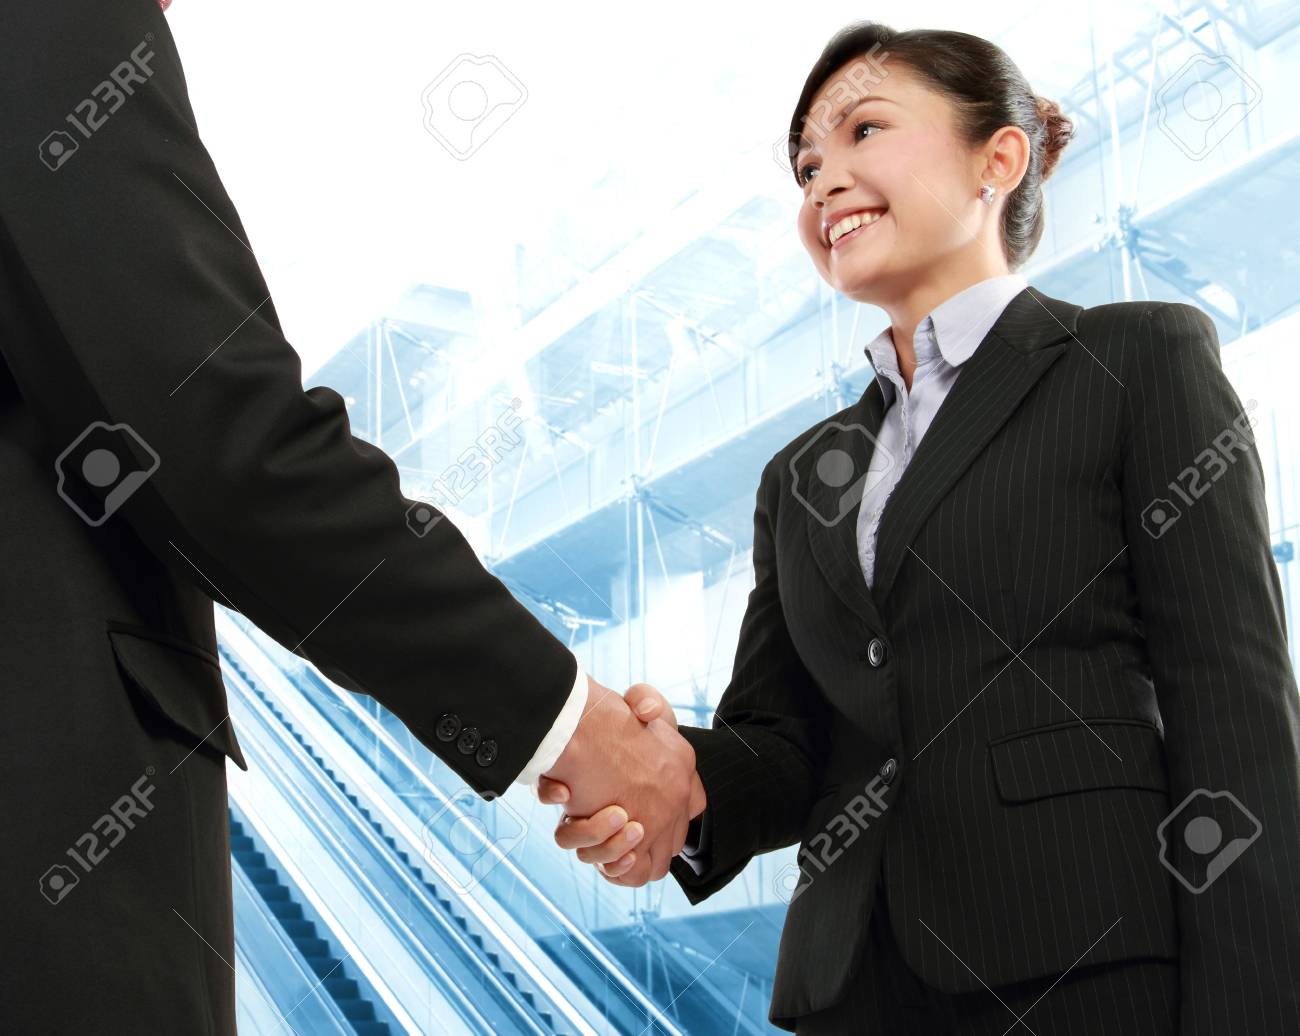 Hand shake between a businessman and a businesswoman in office environment Stock Photo - 13409168